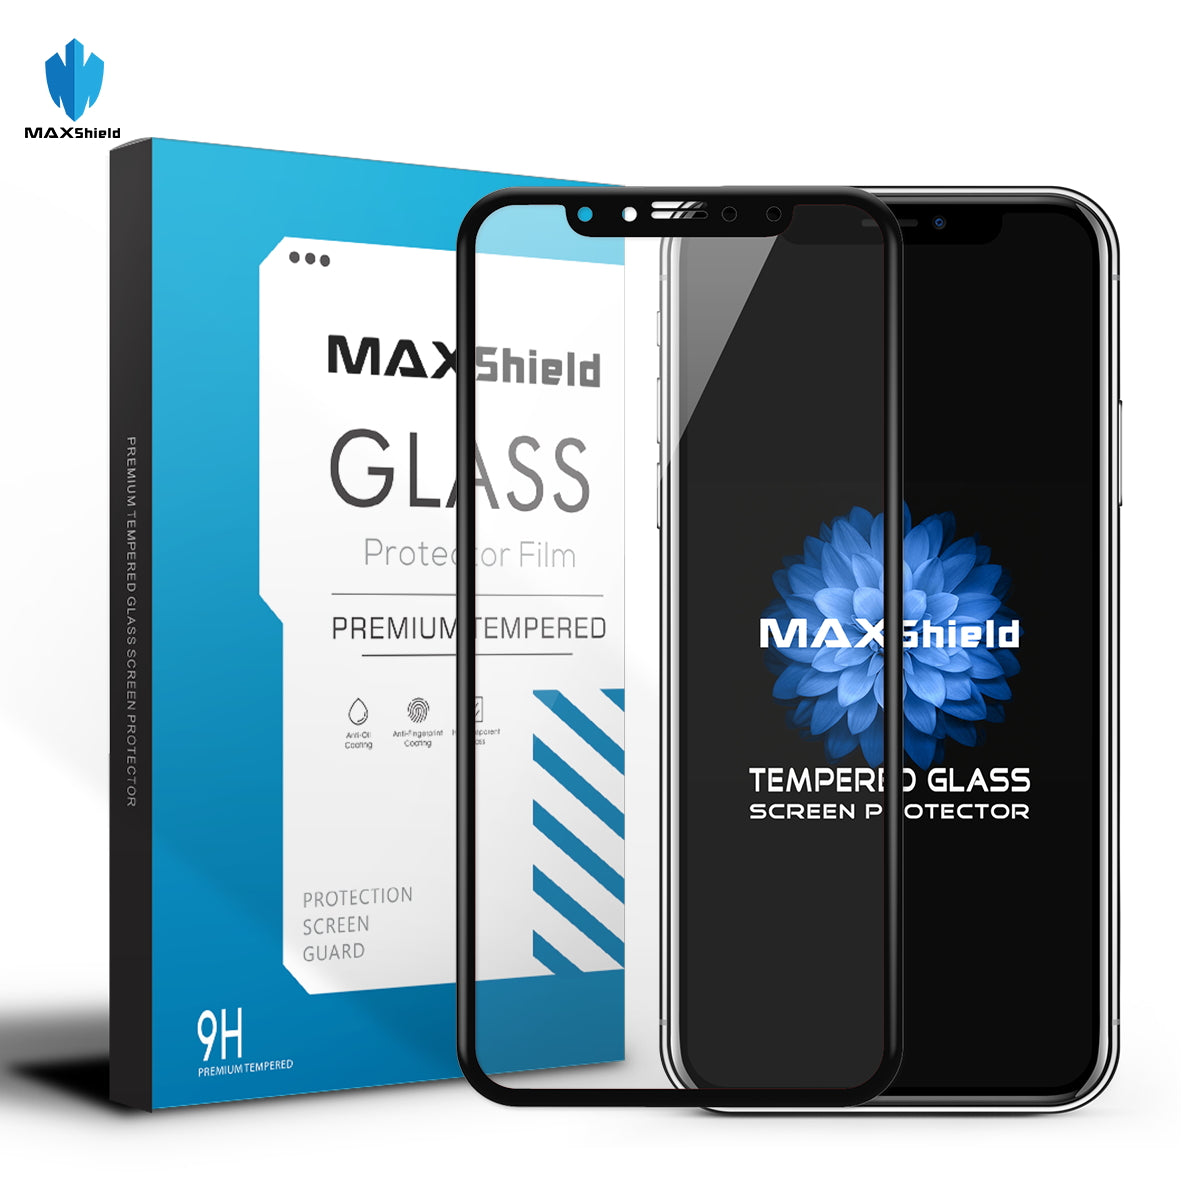 MAXSHIELD FULL TEMPERED GLASS SCREEN PROTECTOR FOR APPLE IPHONE X